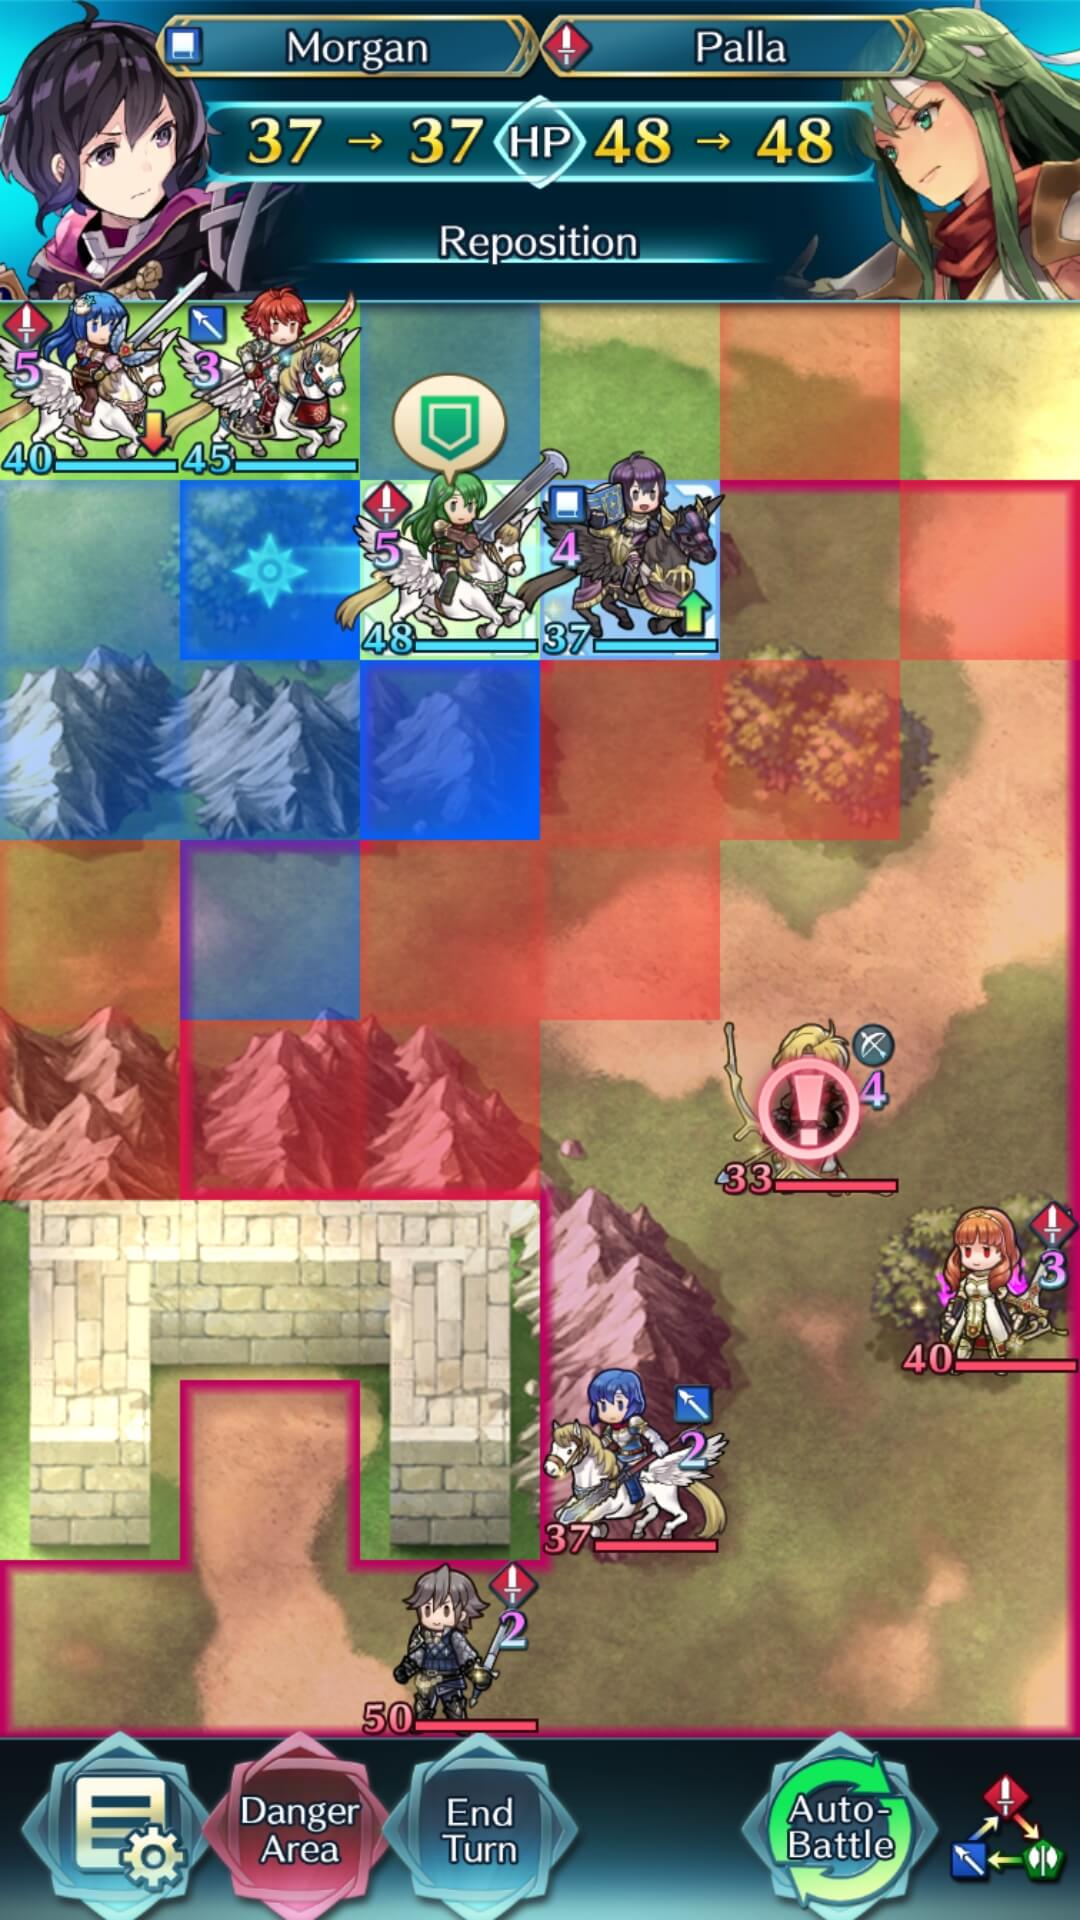 Palla is moved over mountains